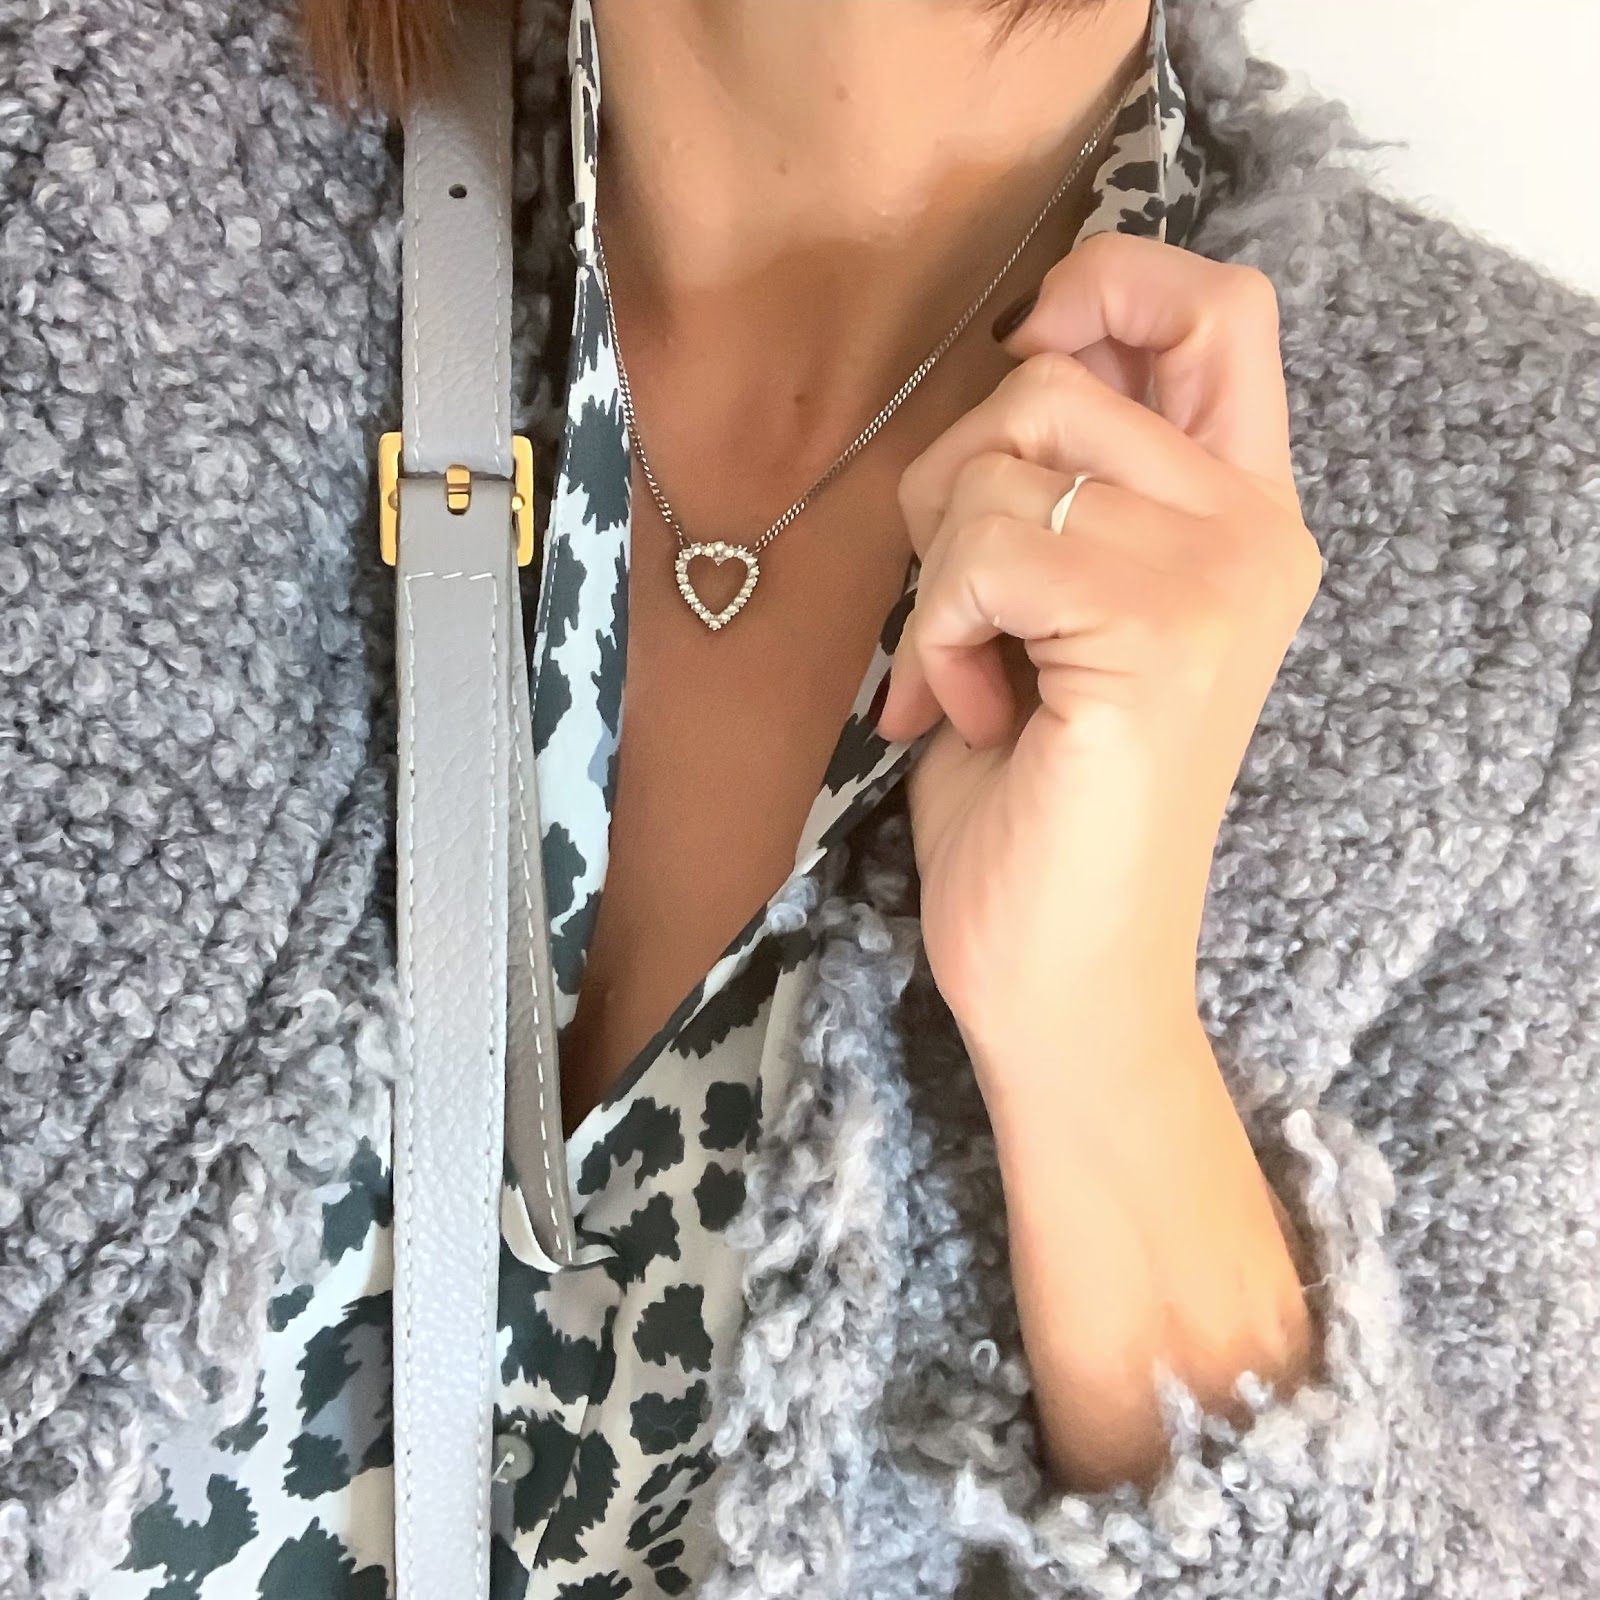 my midlife fashion, iro knitted jacket, somerset by alice temperley leopard print blouse, chloe marcie small cross body bag, j crew 8 inch toothpick jeans, madeleine suede flat boots